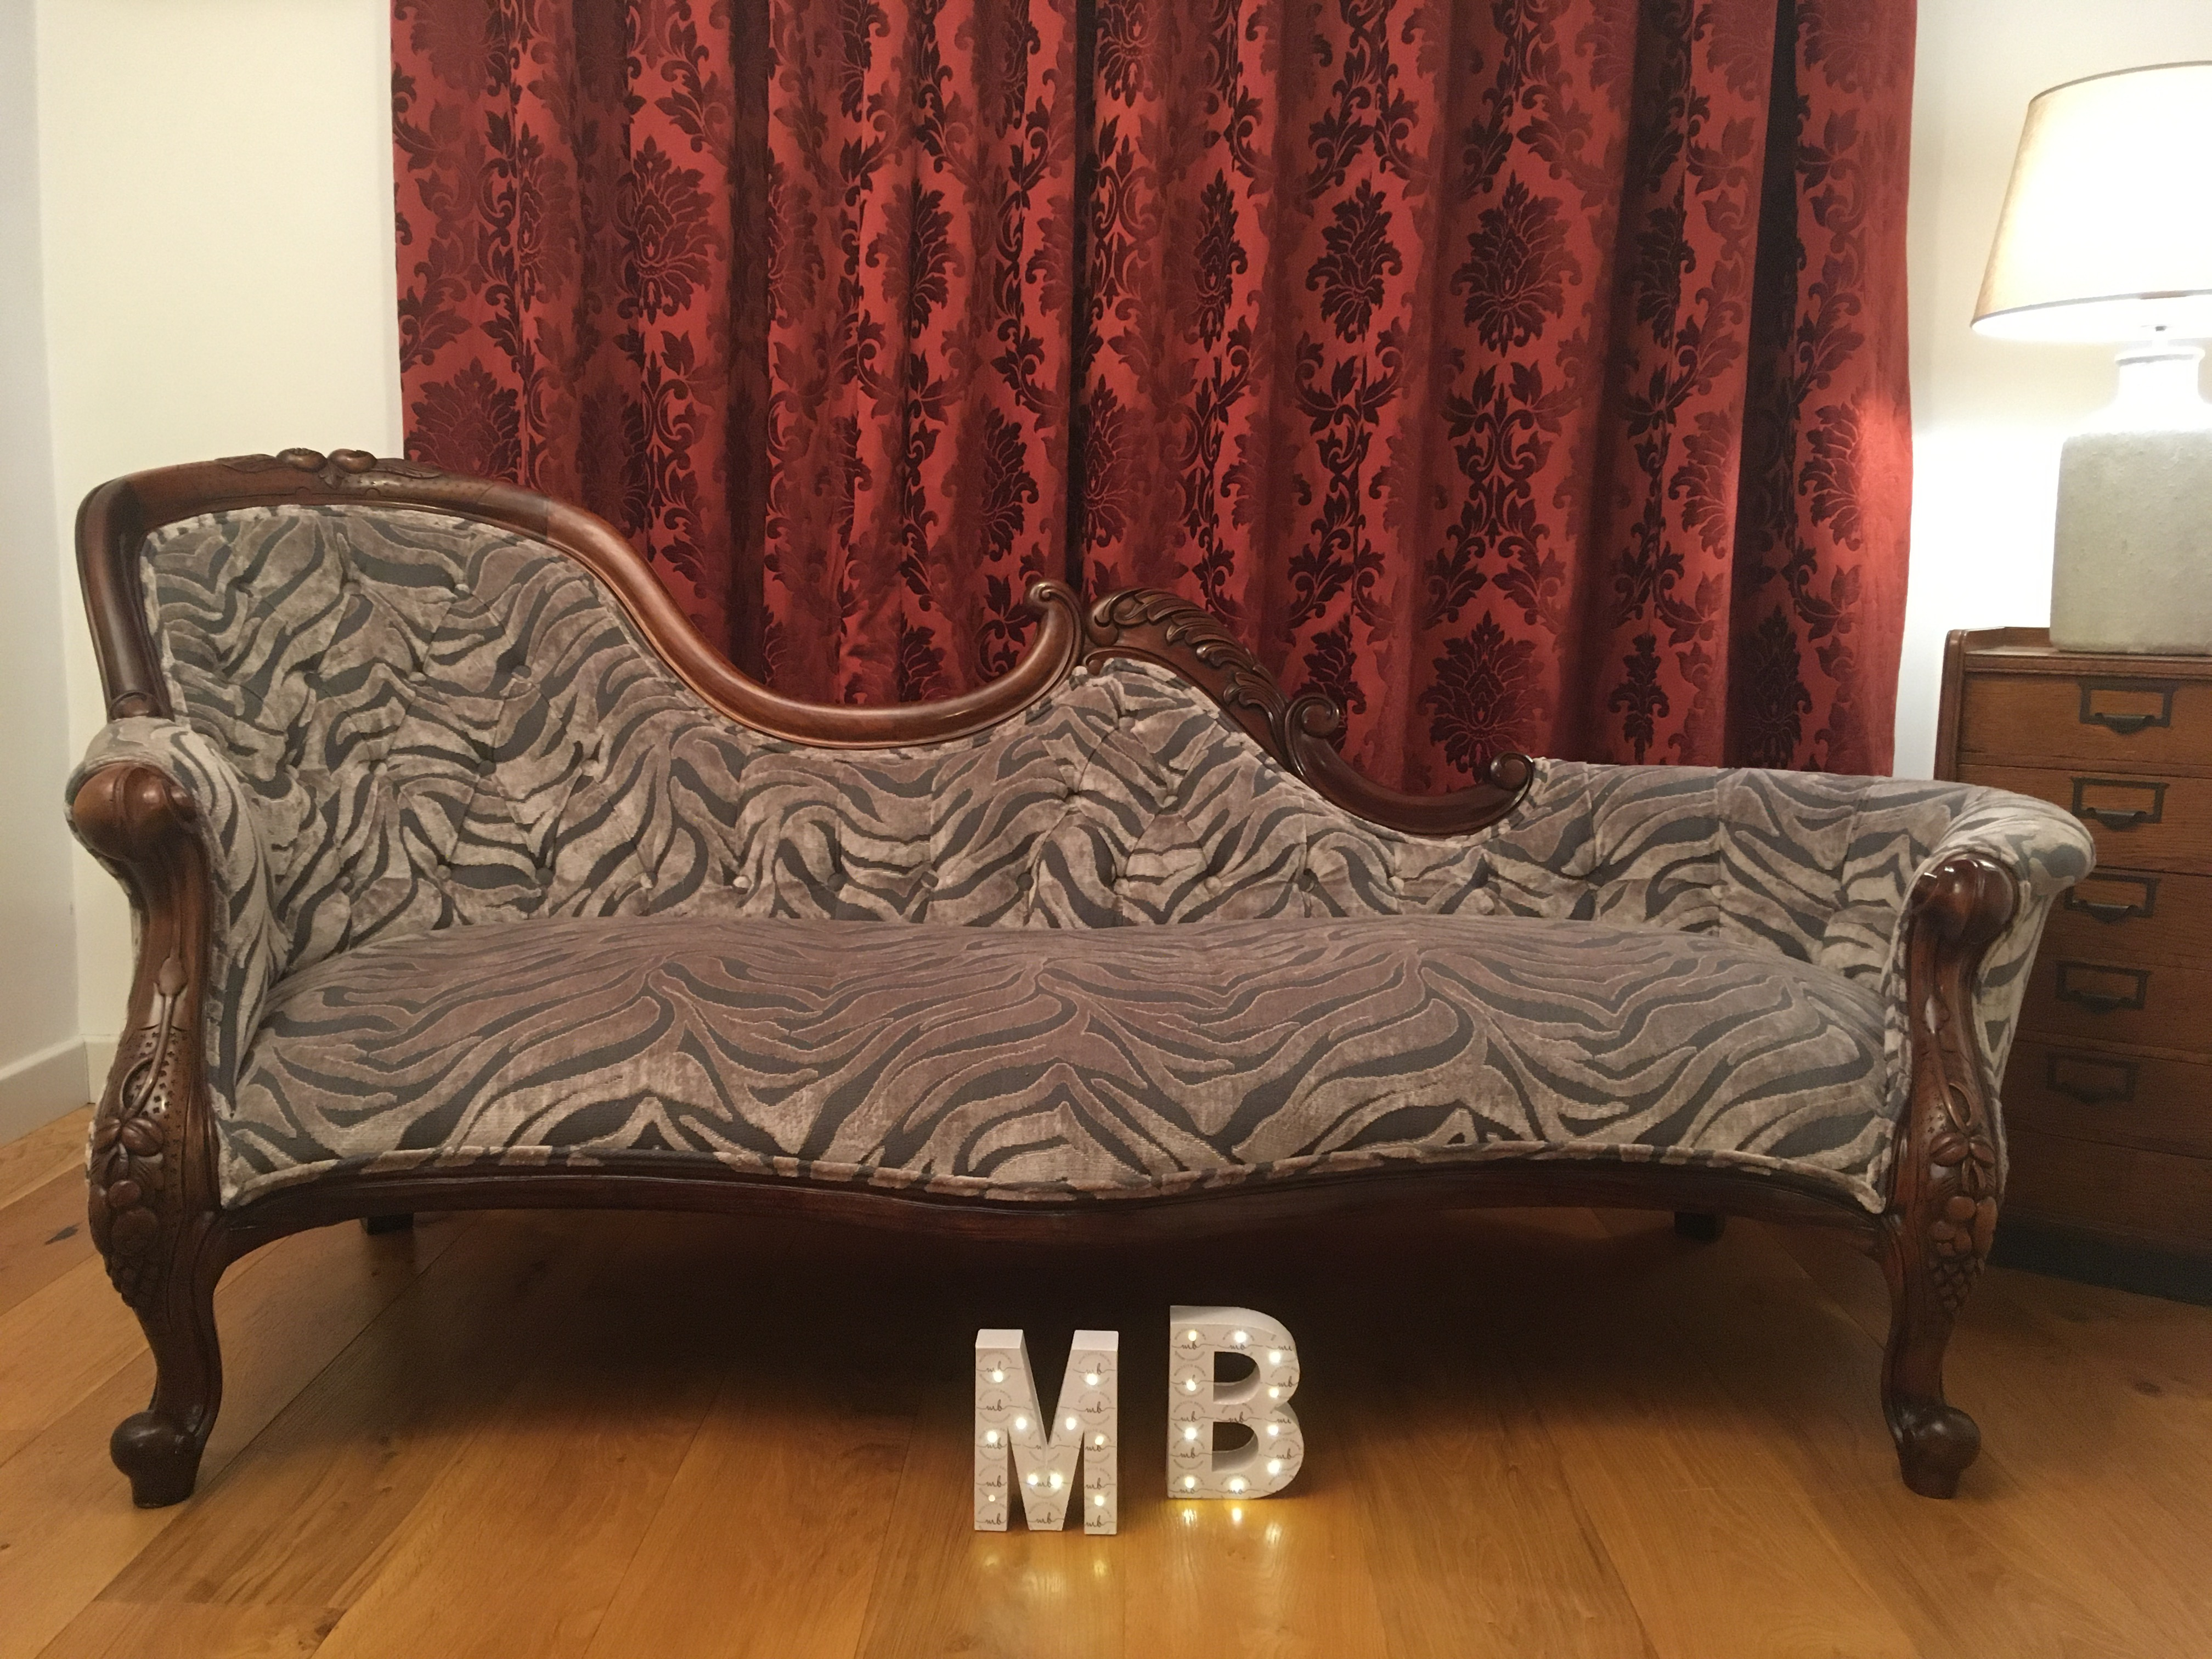 Victorian-style chaise